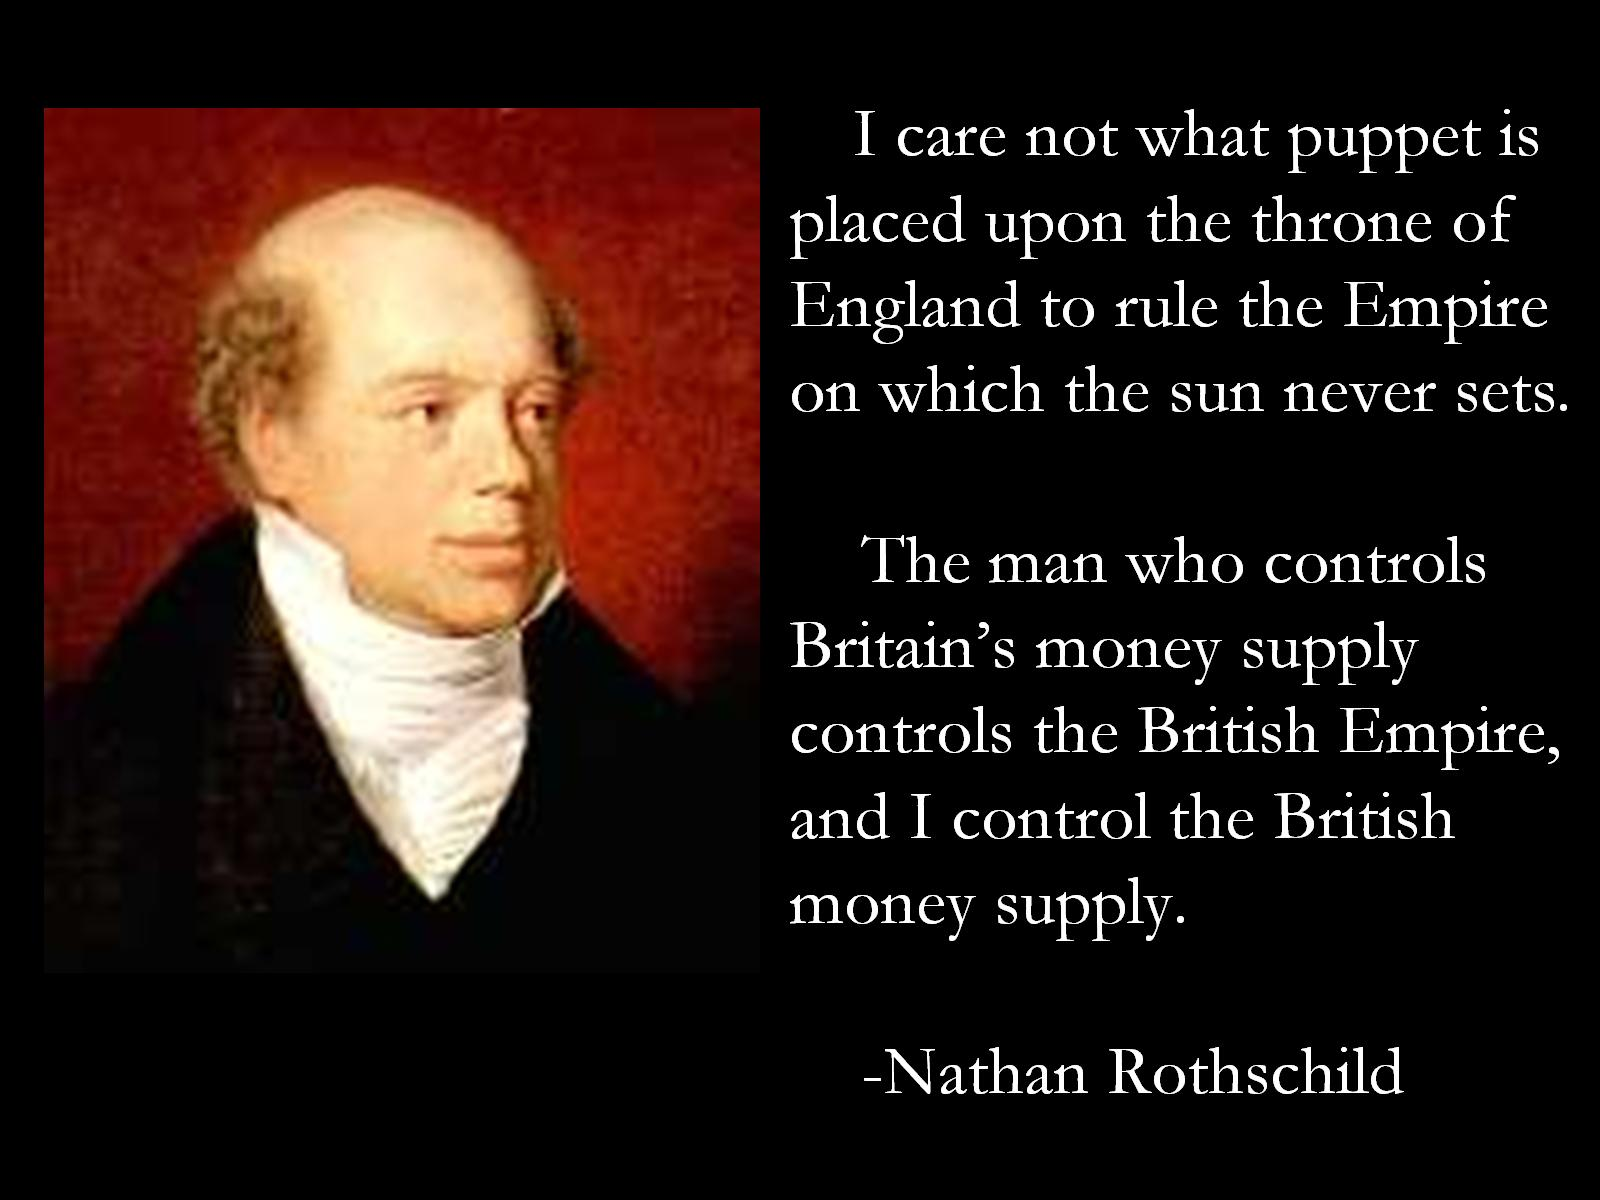 rothschild quote care 